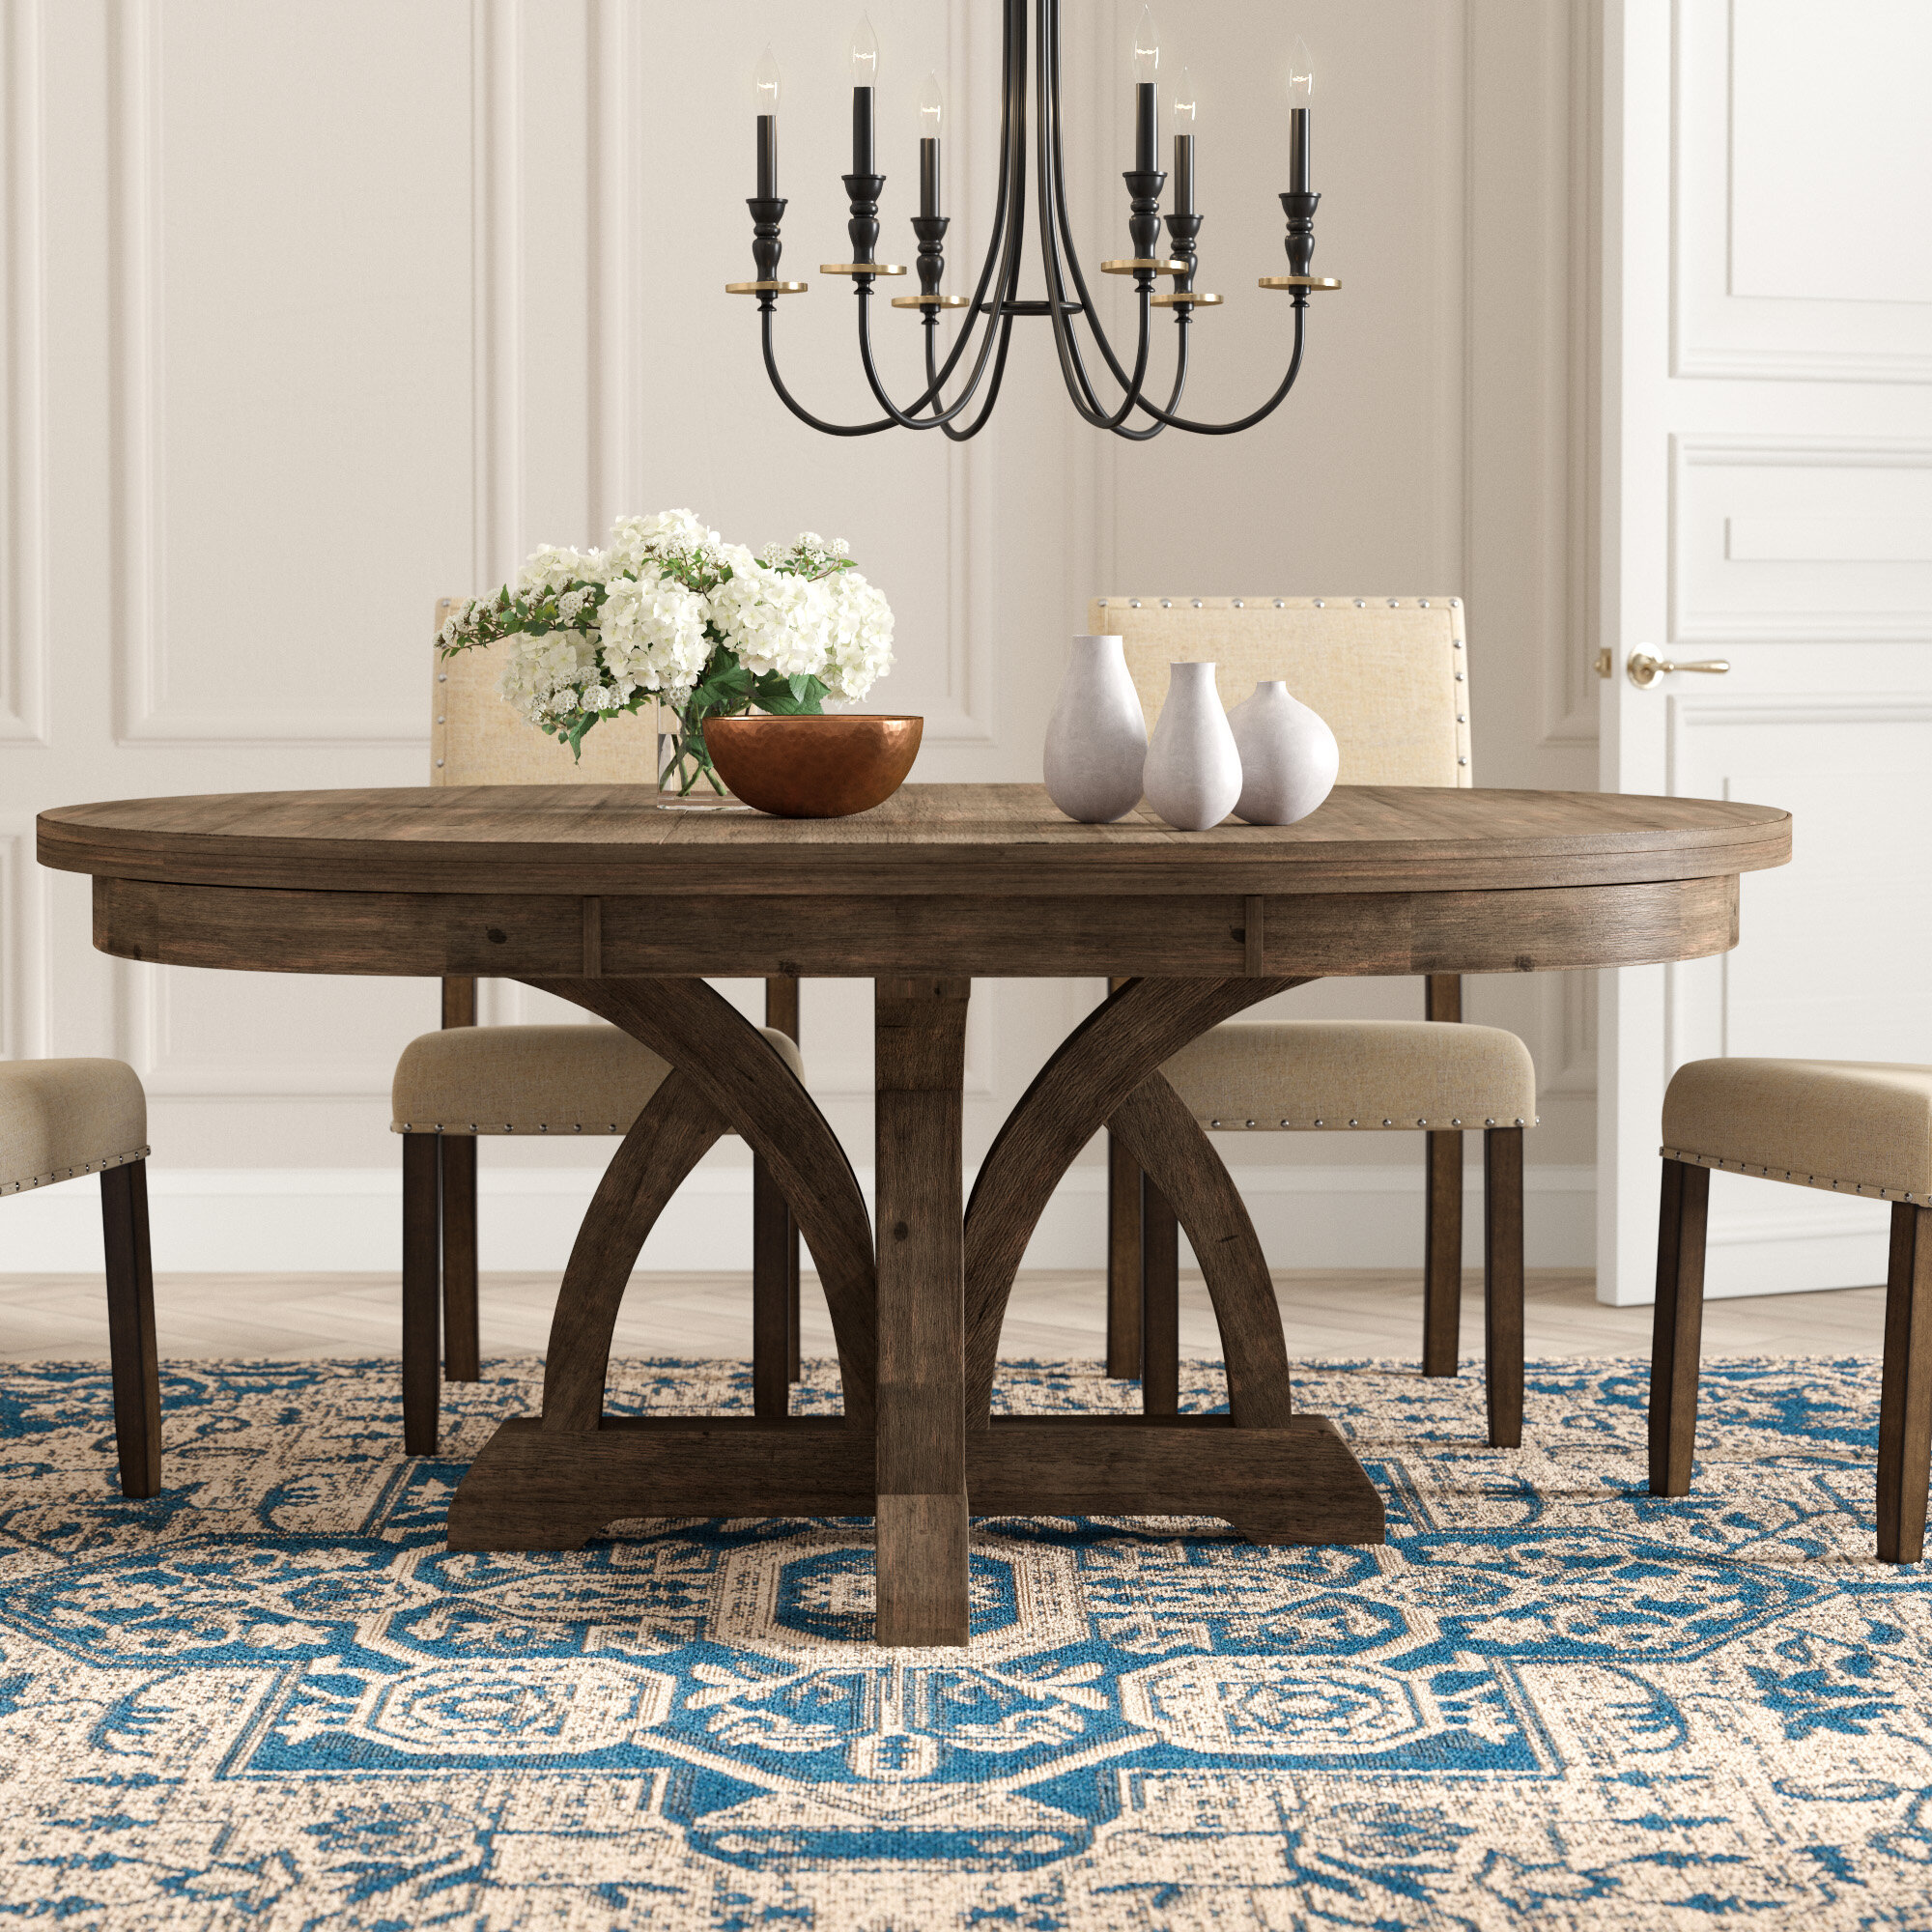 Extendable Round Kitchen & Dining Tables You\'ll Love in 2019 ...